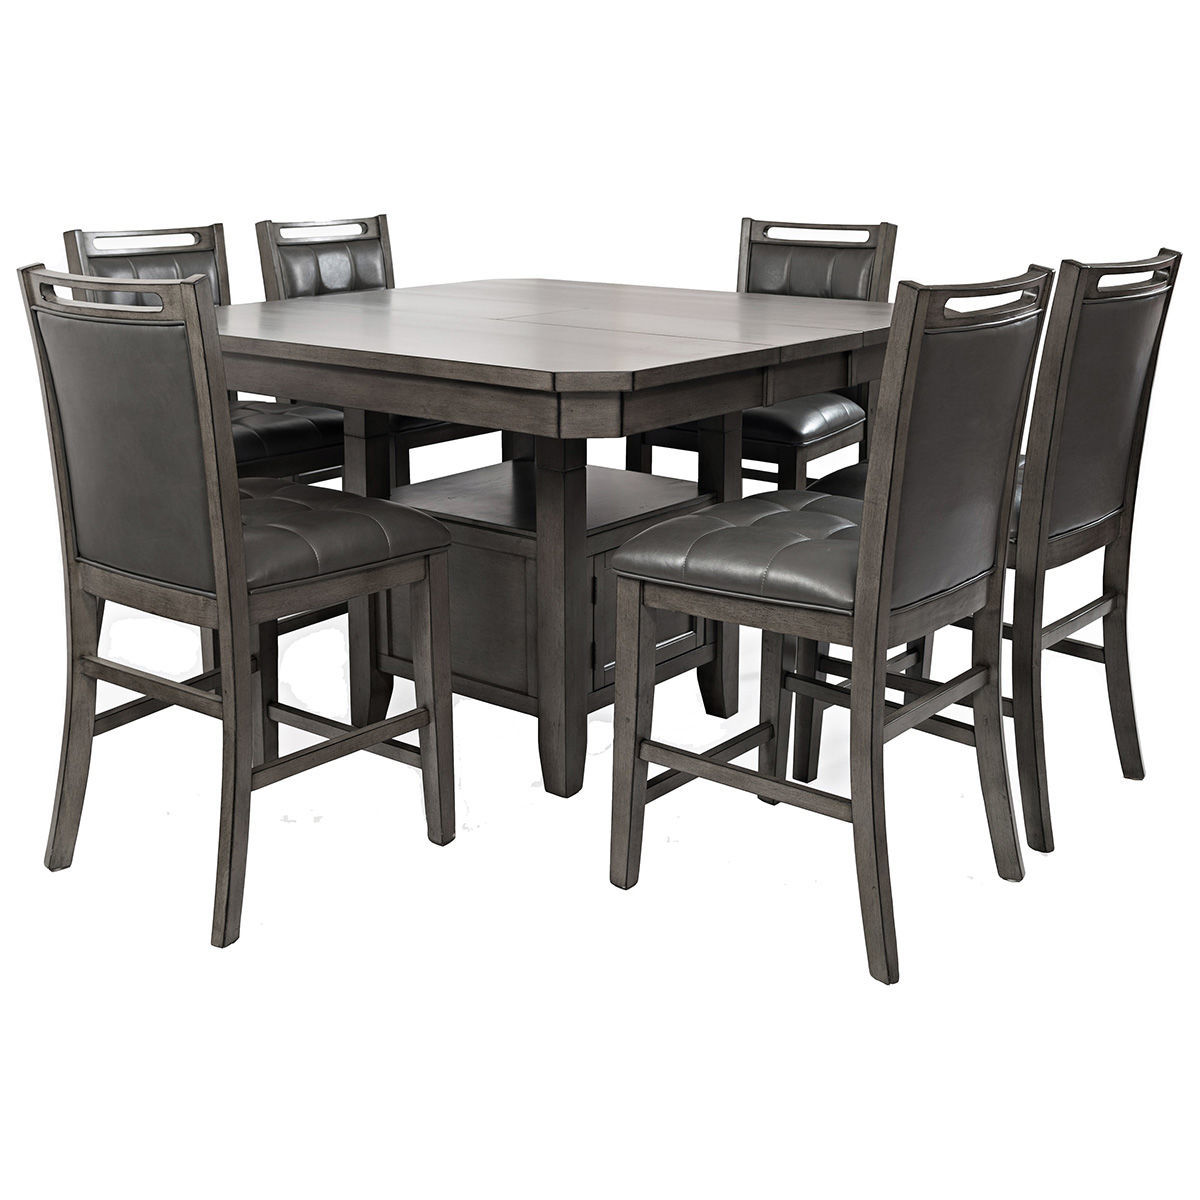 Manchester 7 Piece Counter Height Dining Set